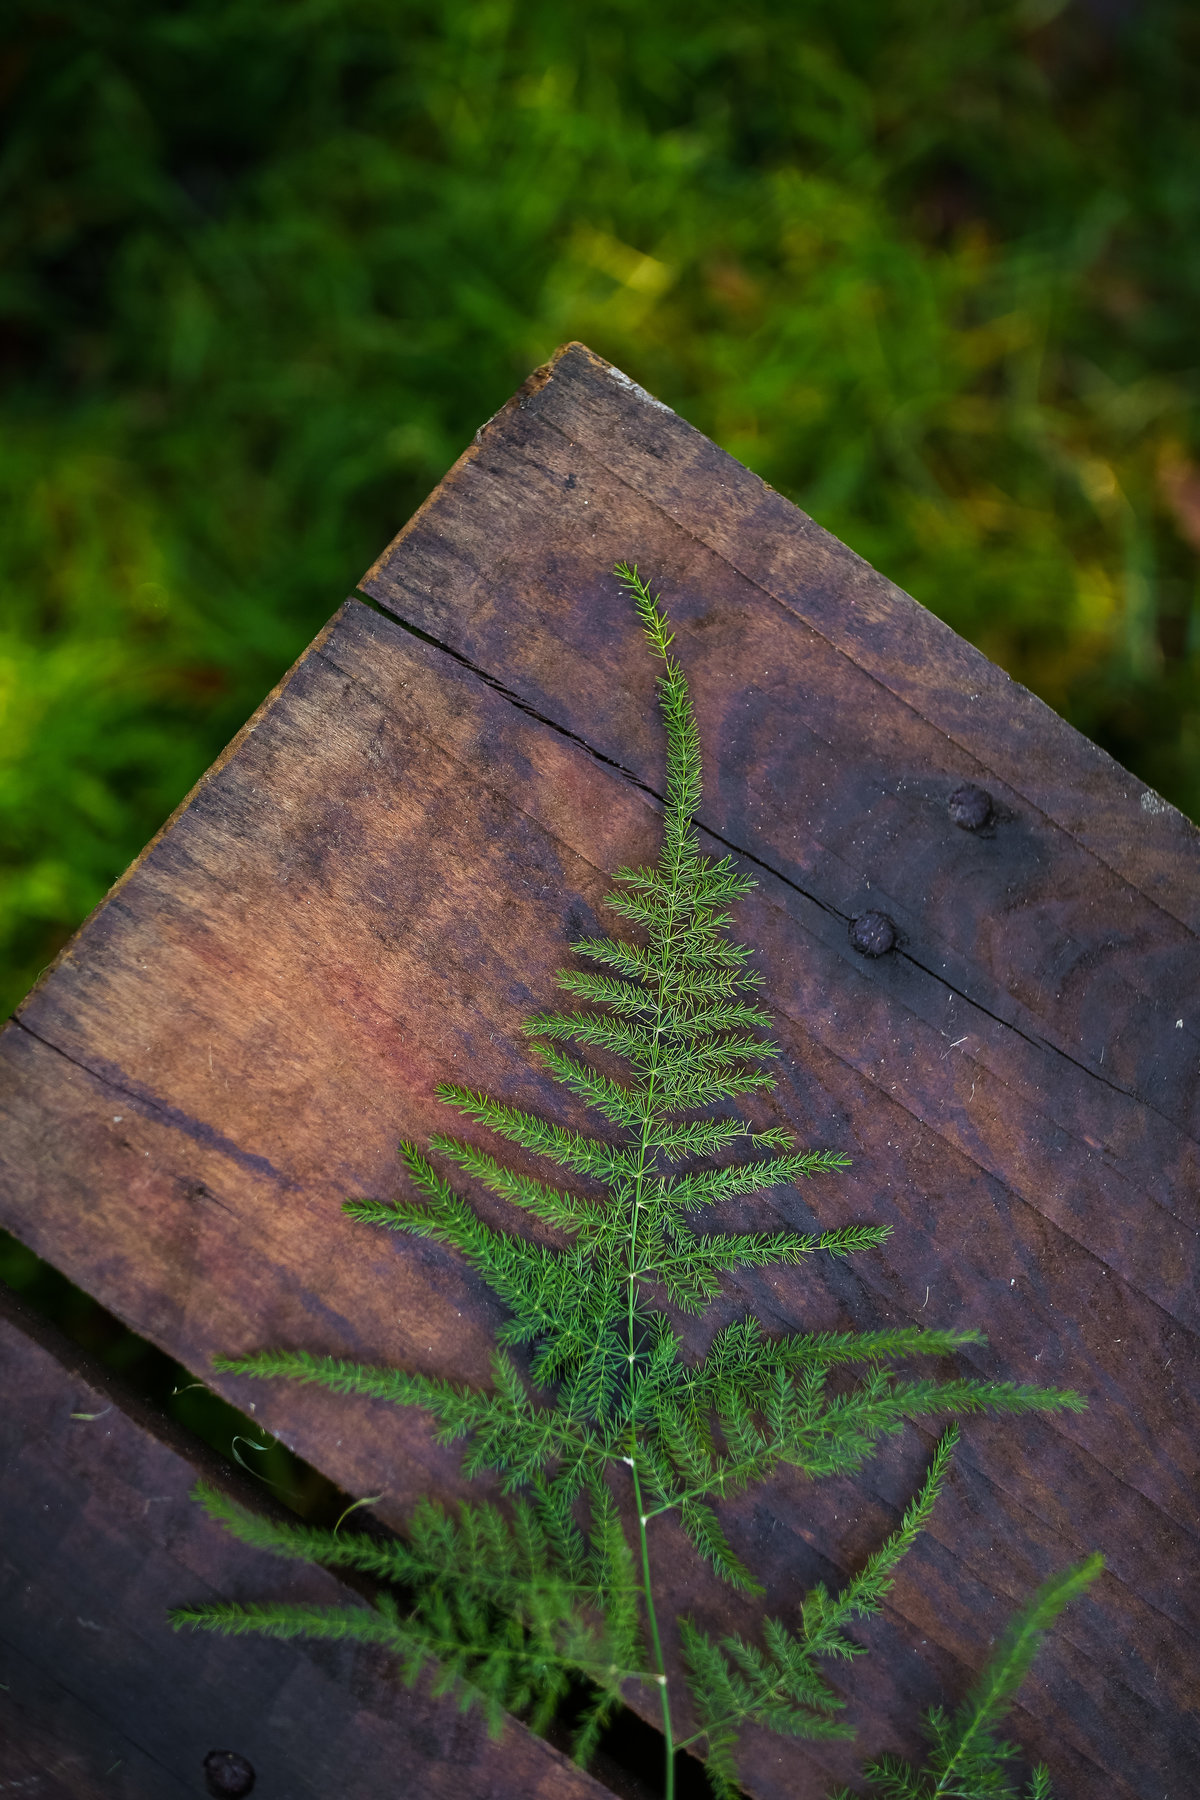 greenery on wood